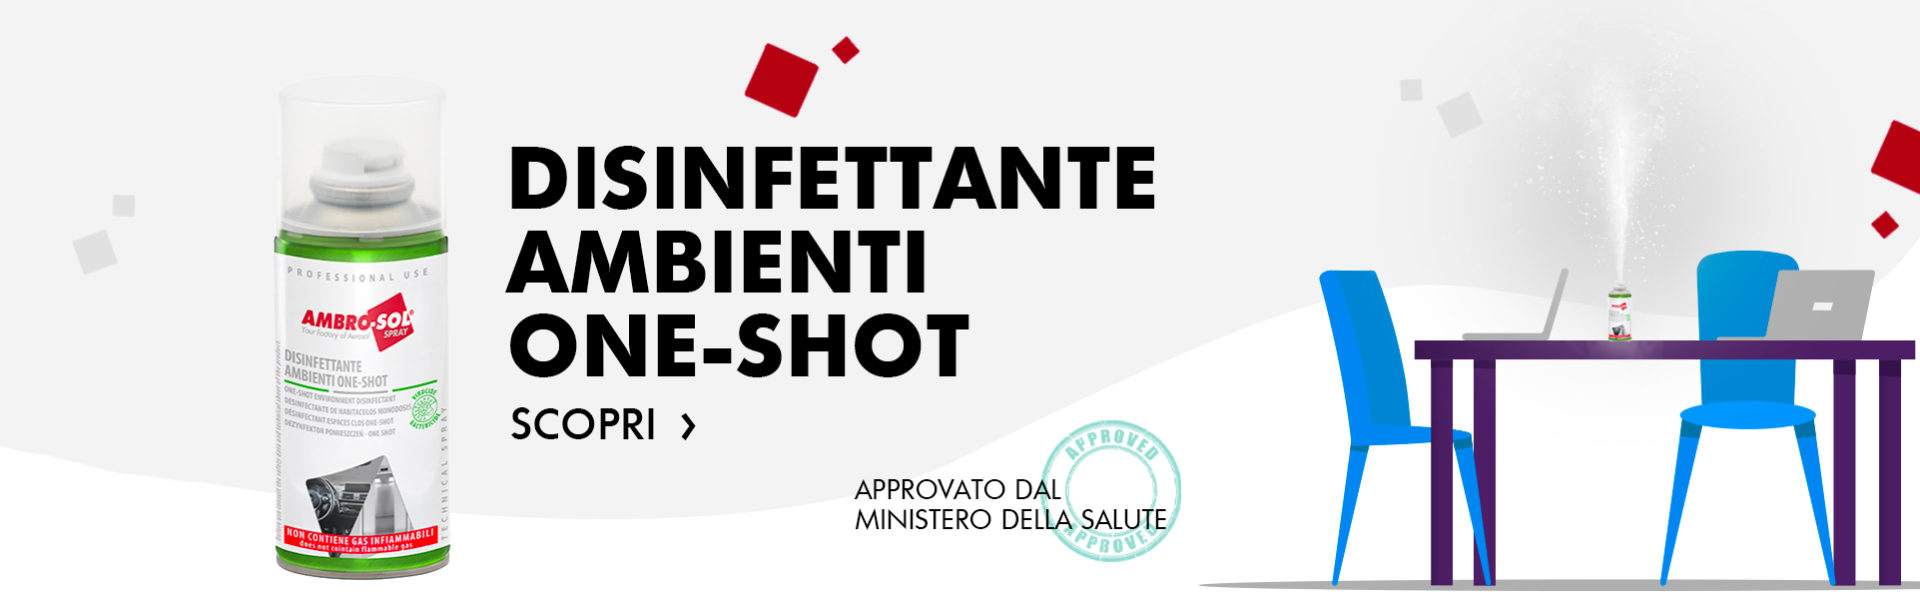 disinfettante ambienti one-shot A467D ambrosol